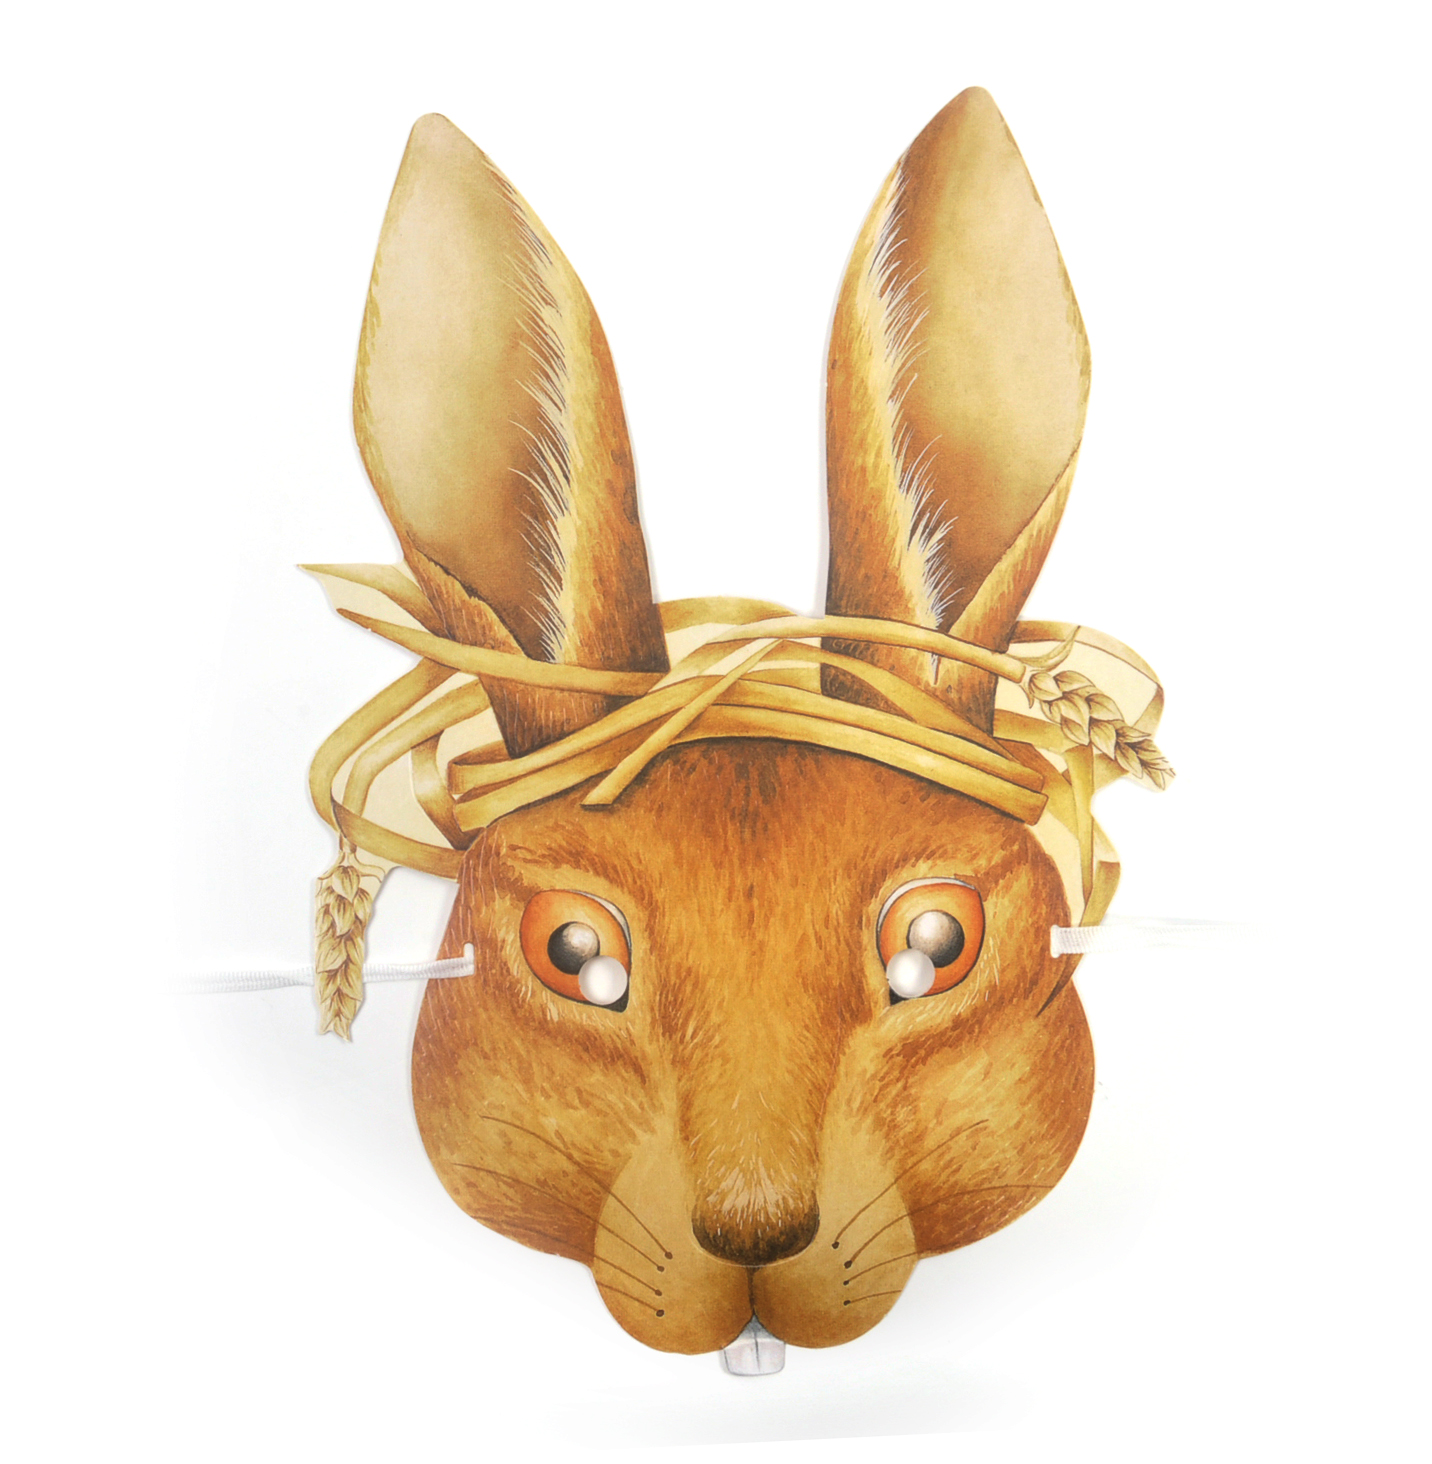 March Hare Alice In Wonderland: March Hare - Classic Alice In Wonderland Party Mask